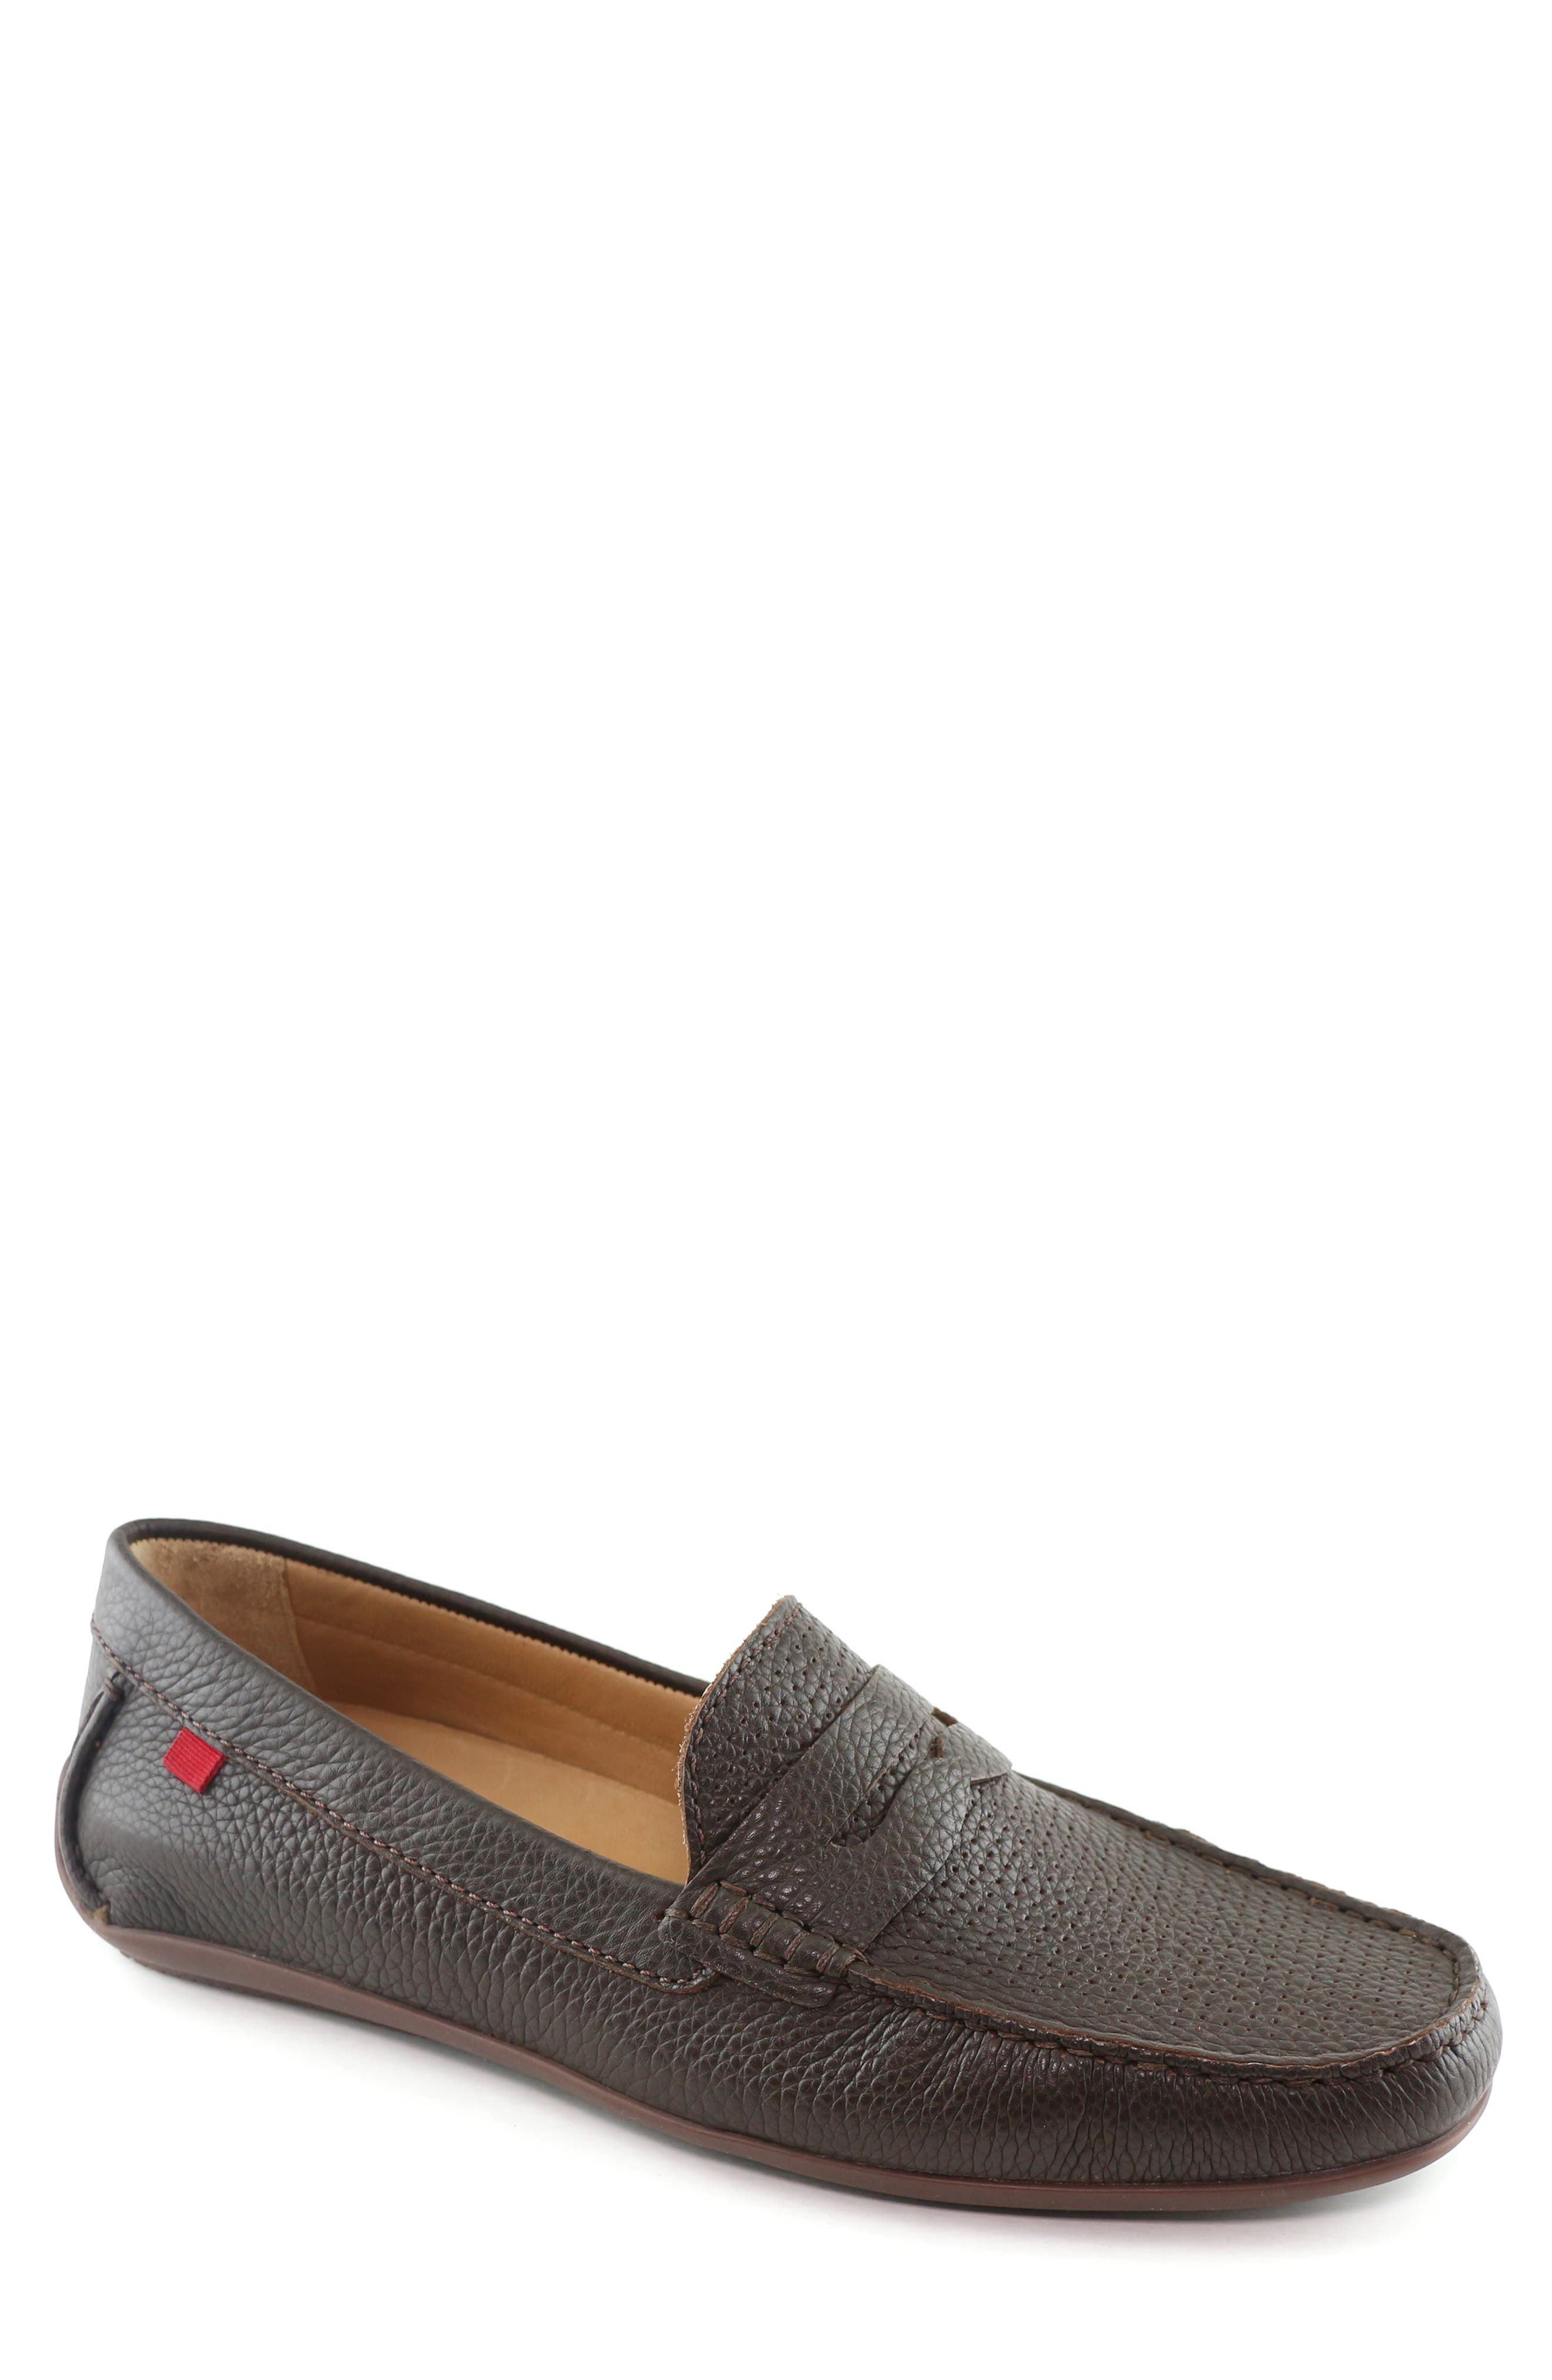 MARC JOSEPH NEW YORK, 'Union Street' Penny Loafer, Main thumbnail 1, color, BROWN GRAINY LEATHER